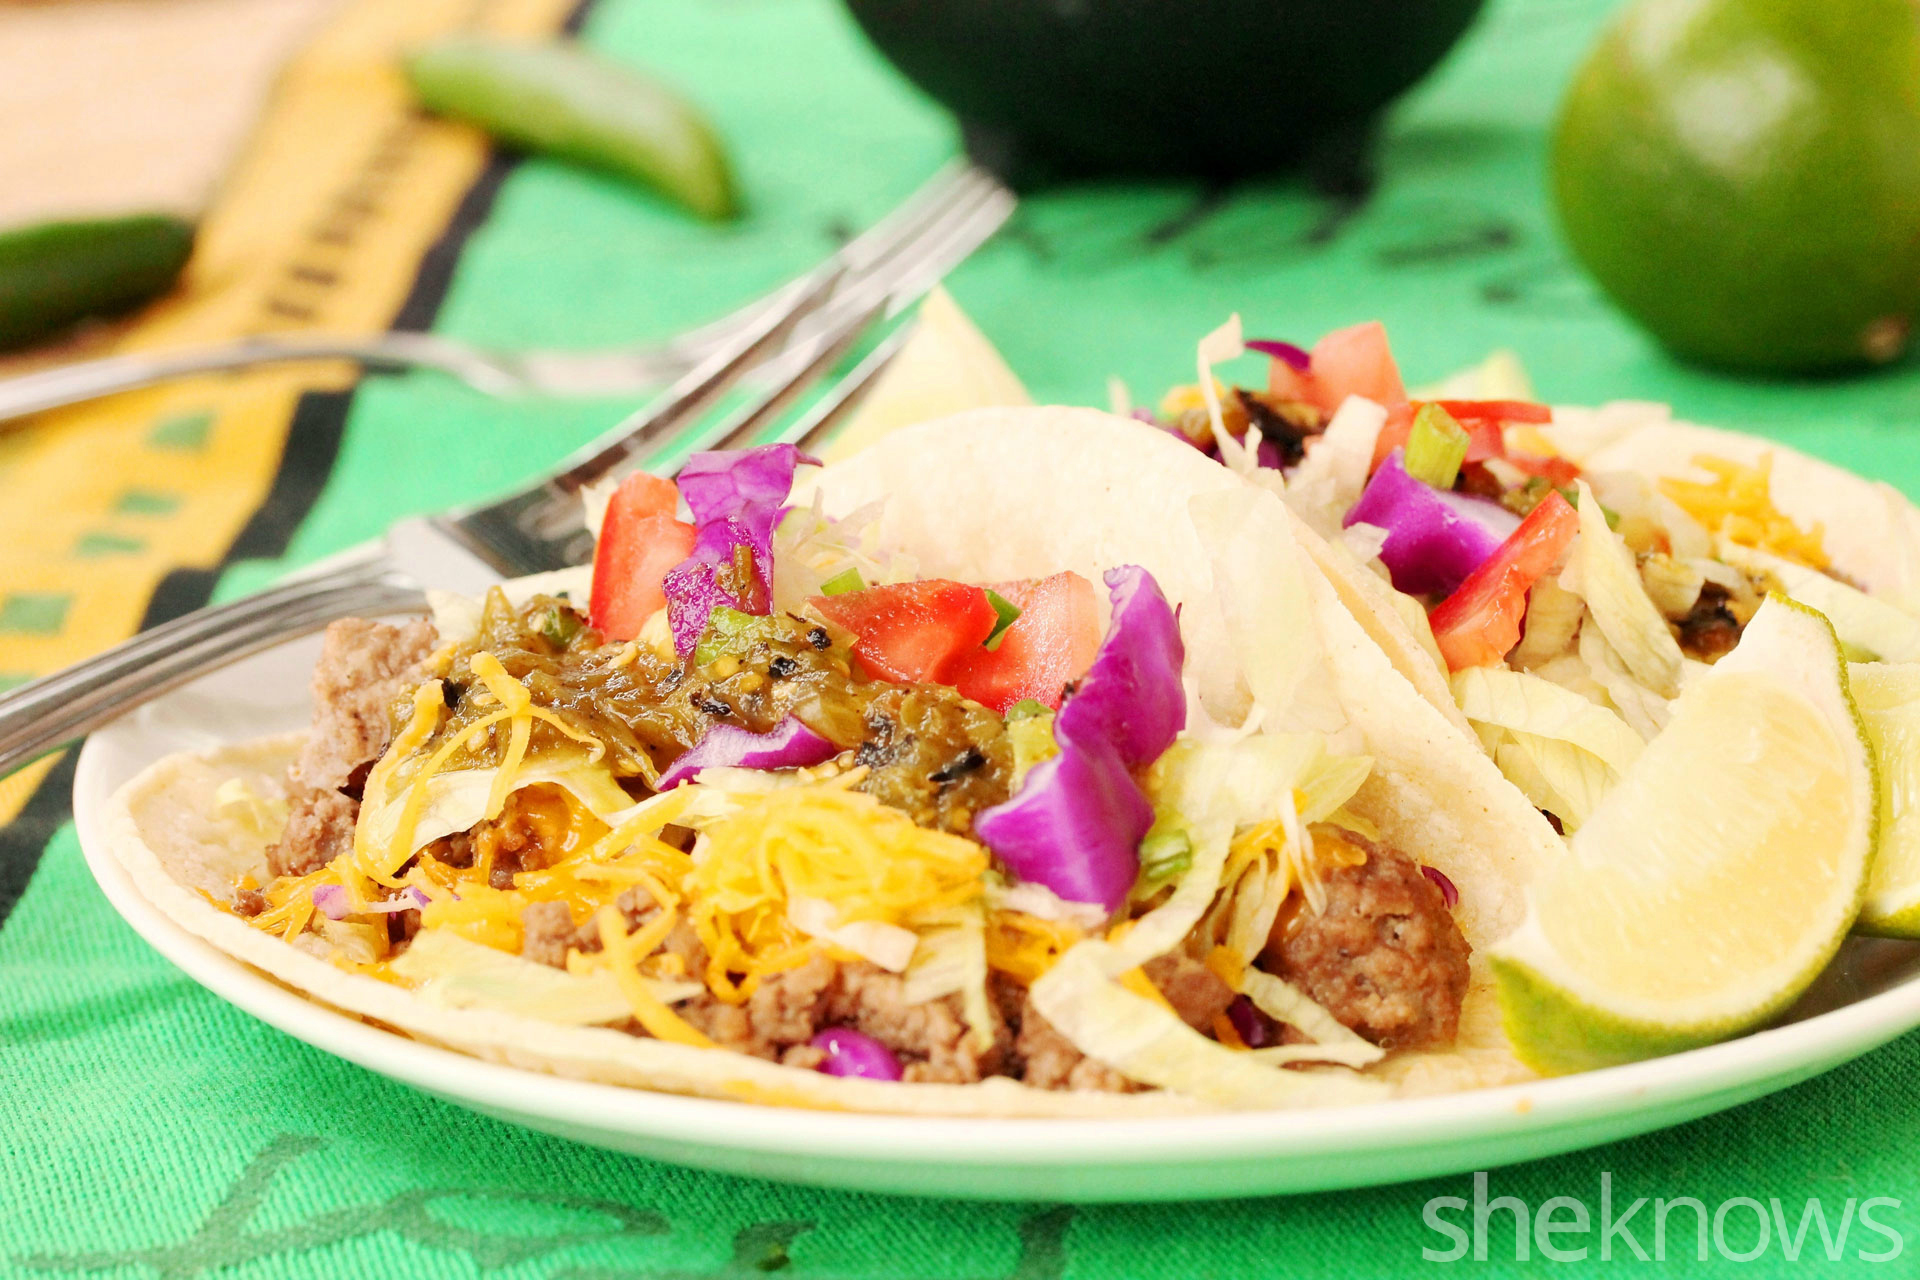 Soft tacos with ground beef